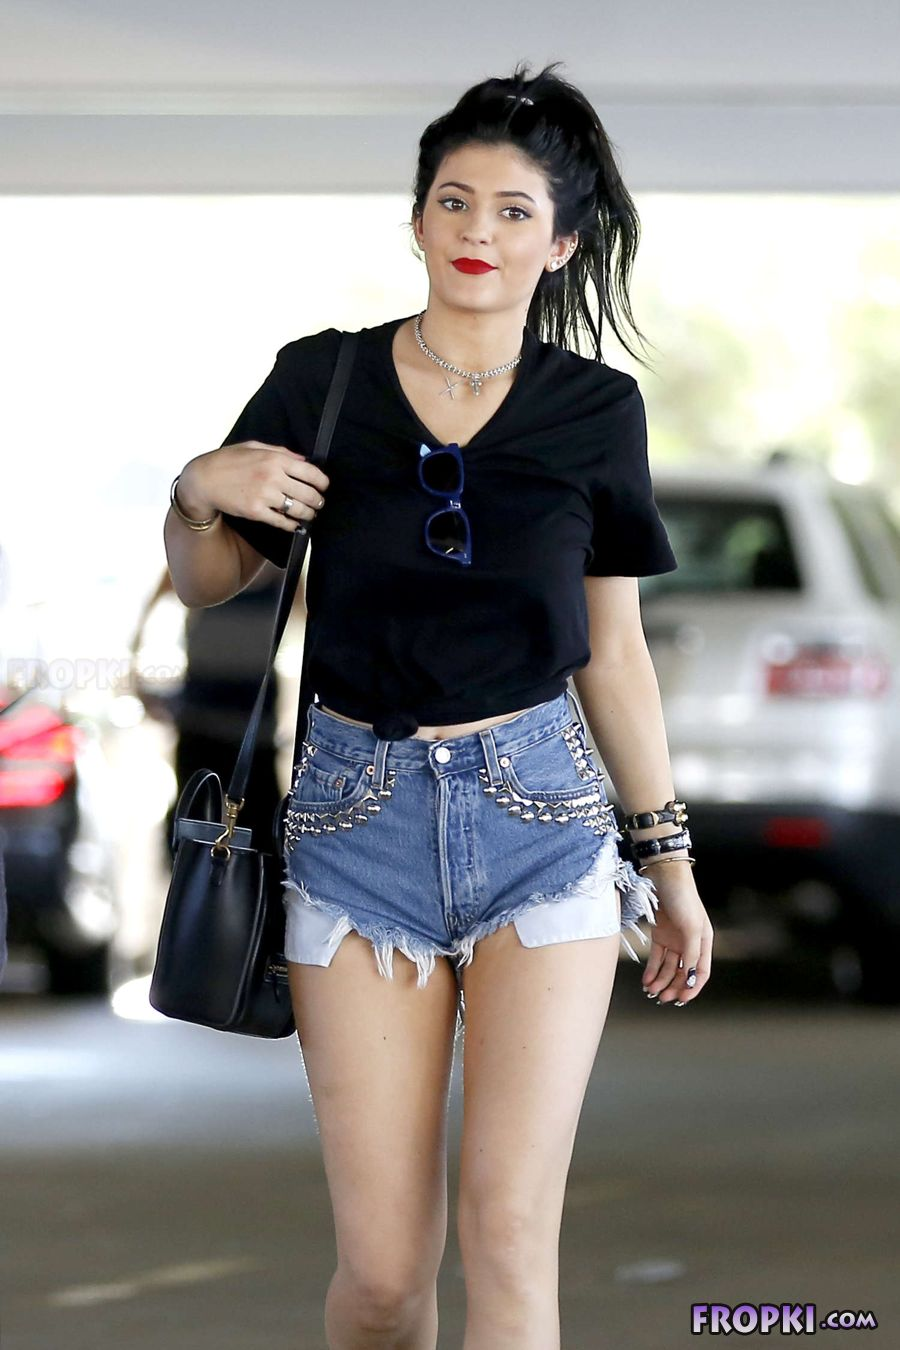 Kylie Jenner in denim Out n About in Calabasas AcpOM7g3